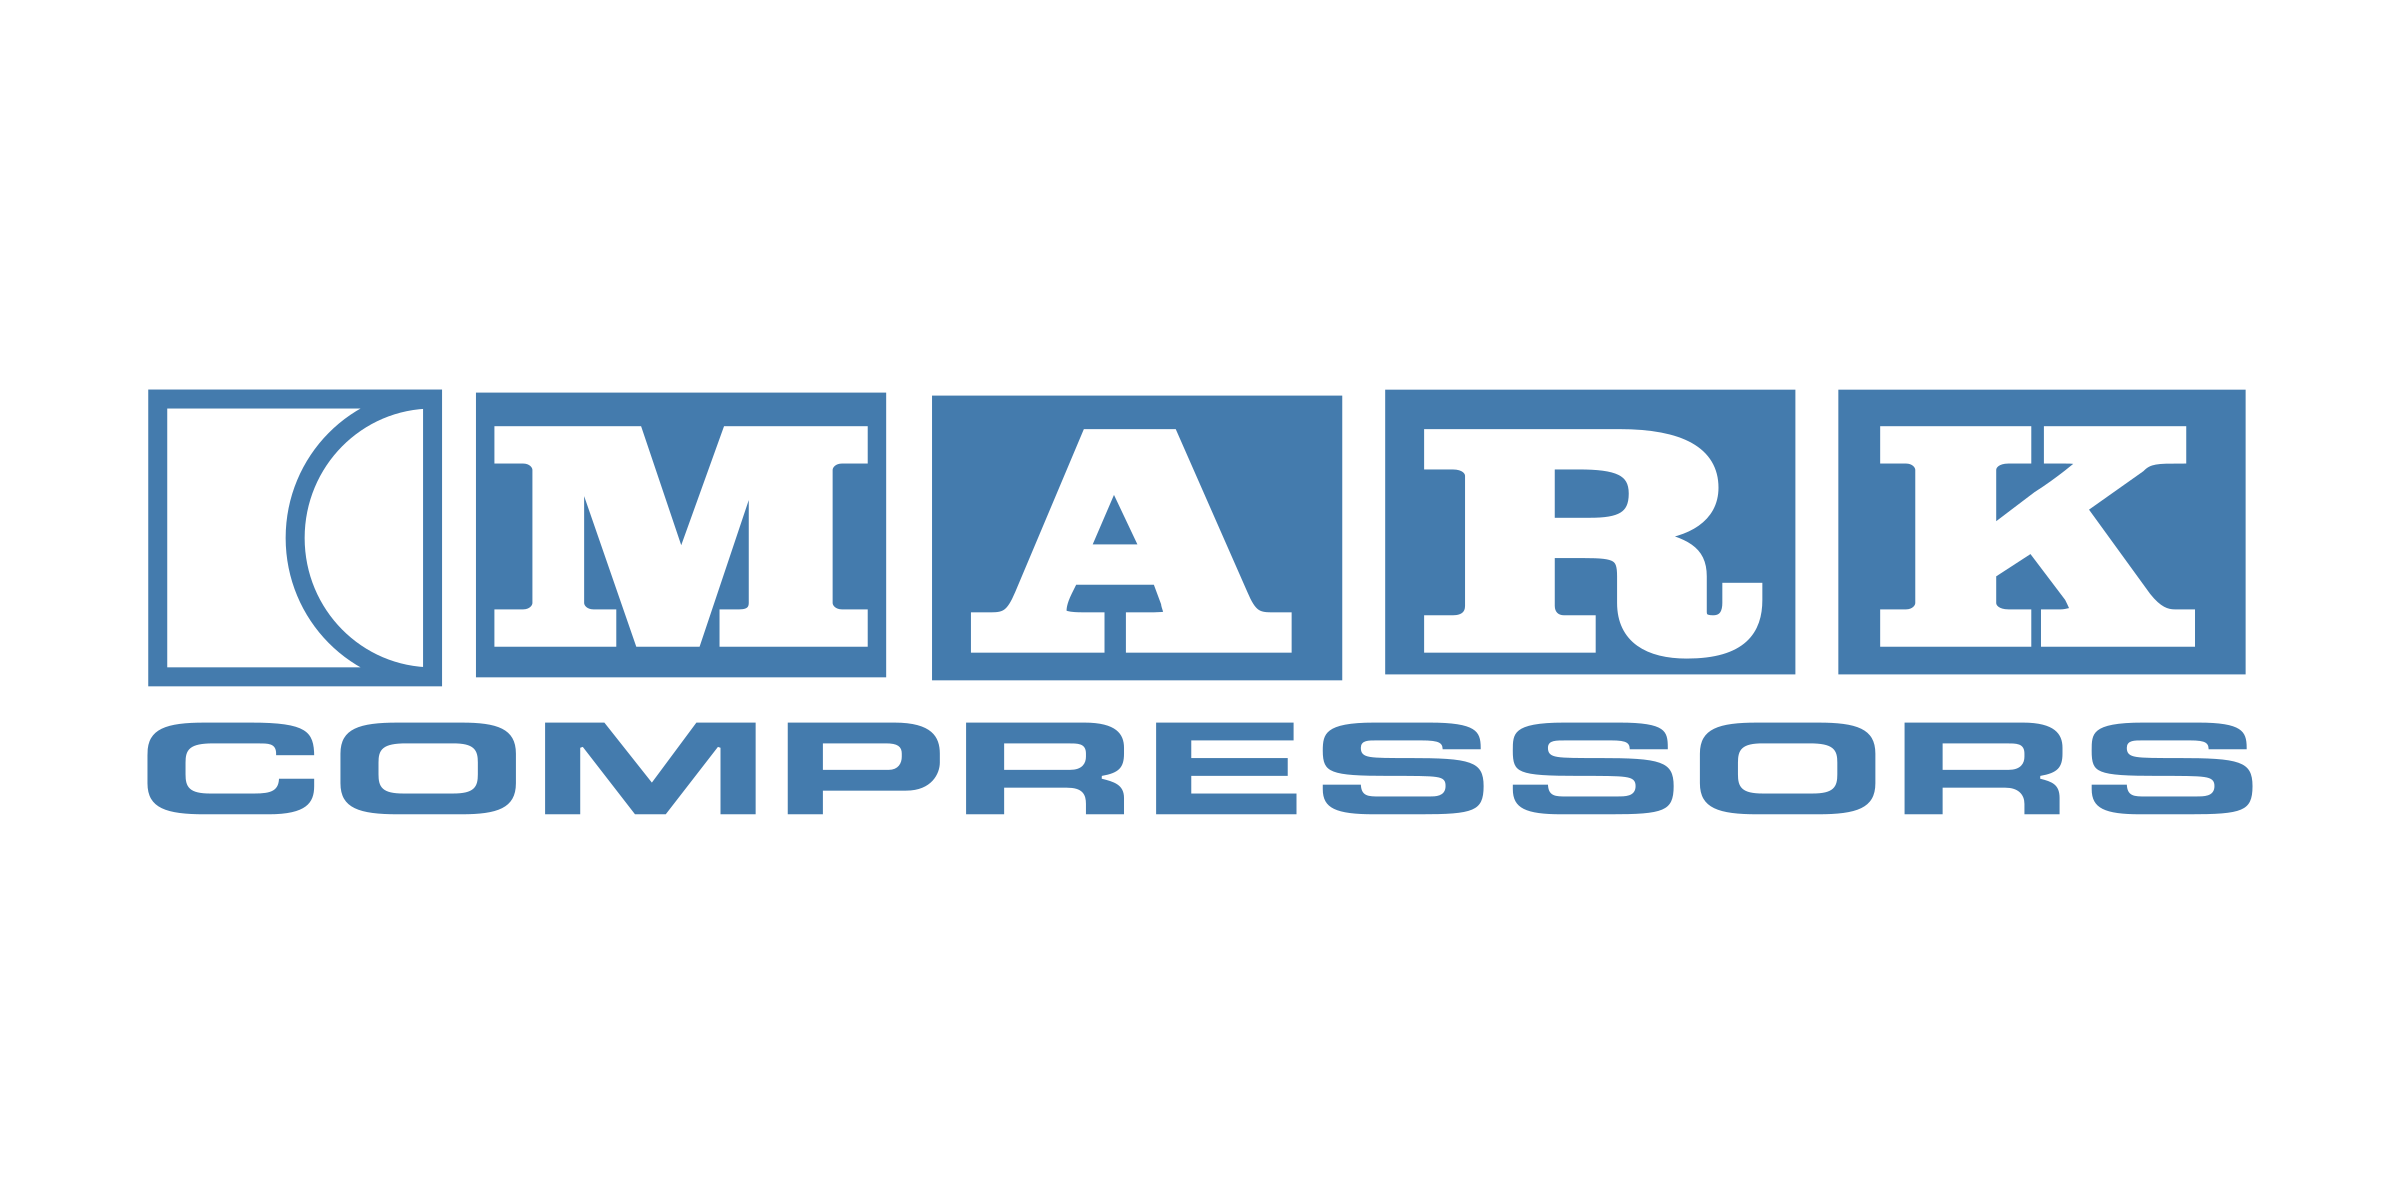 Mark Compressors logo